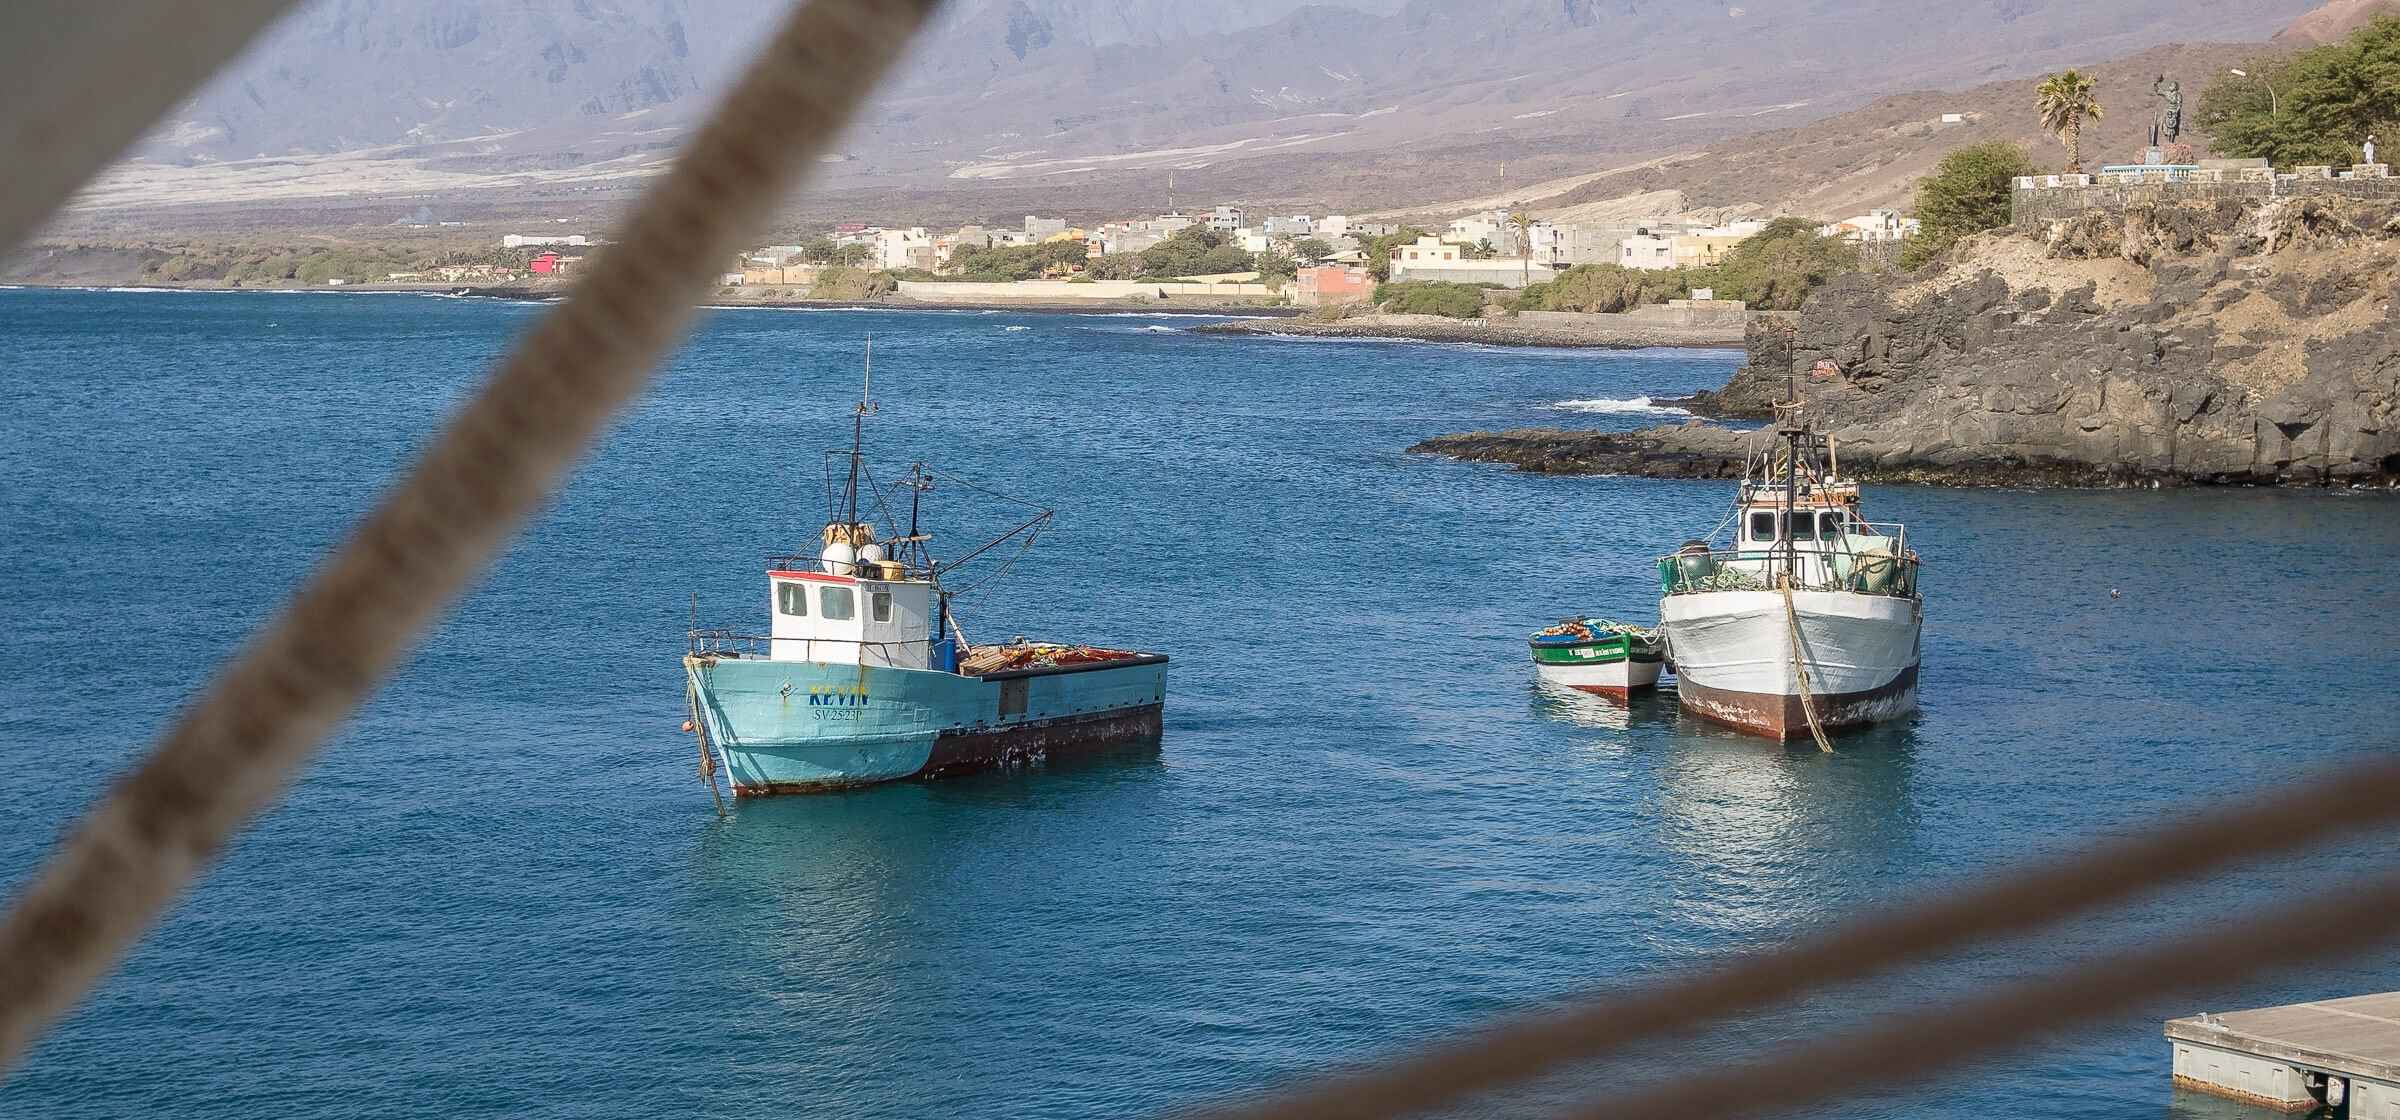 Ships in the Harbour on Sao Vicente Island, Cape Verde